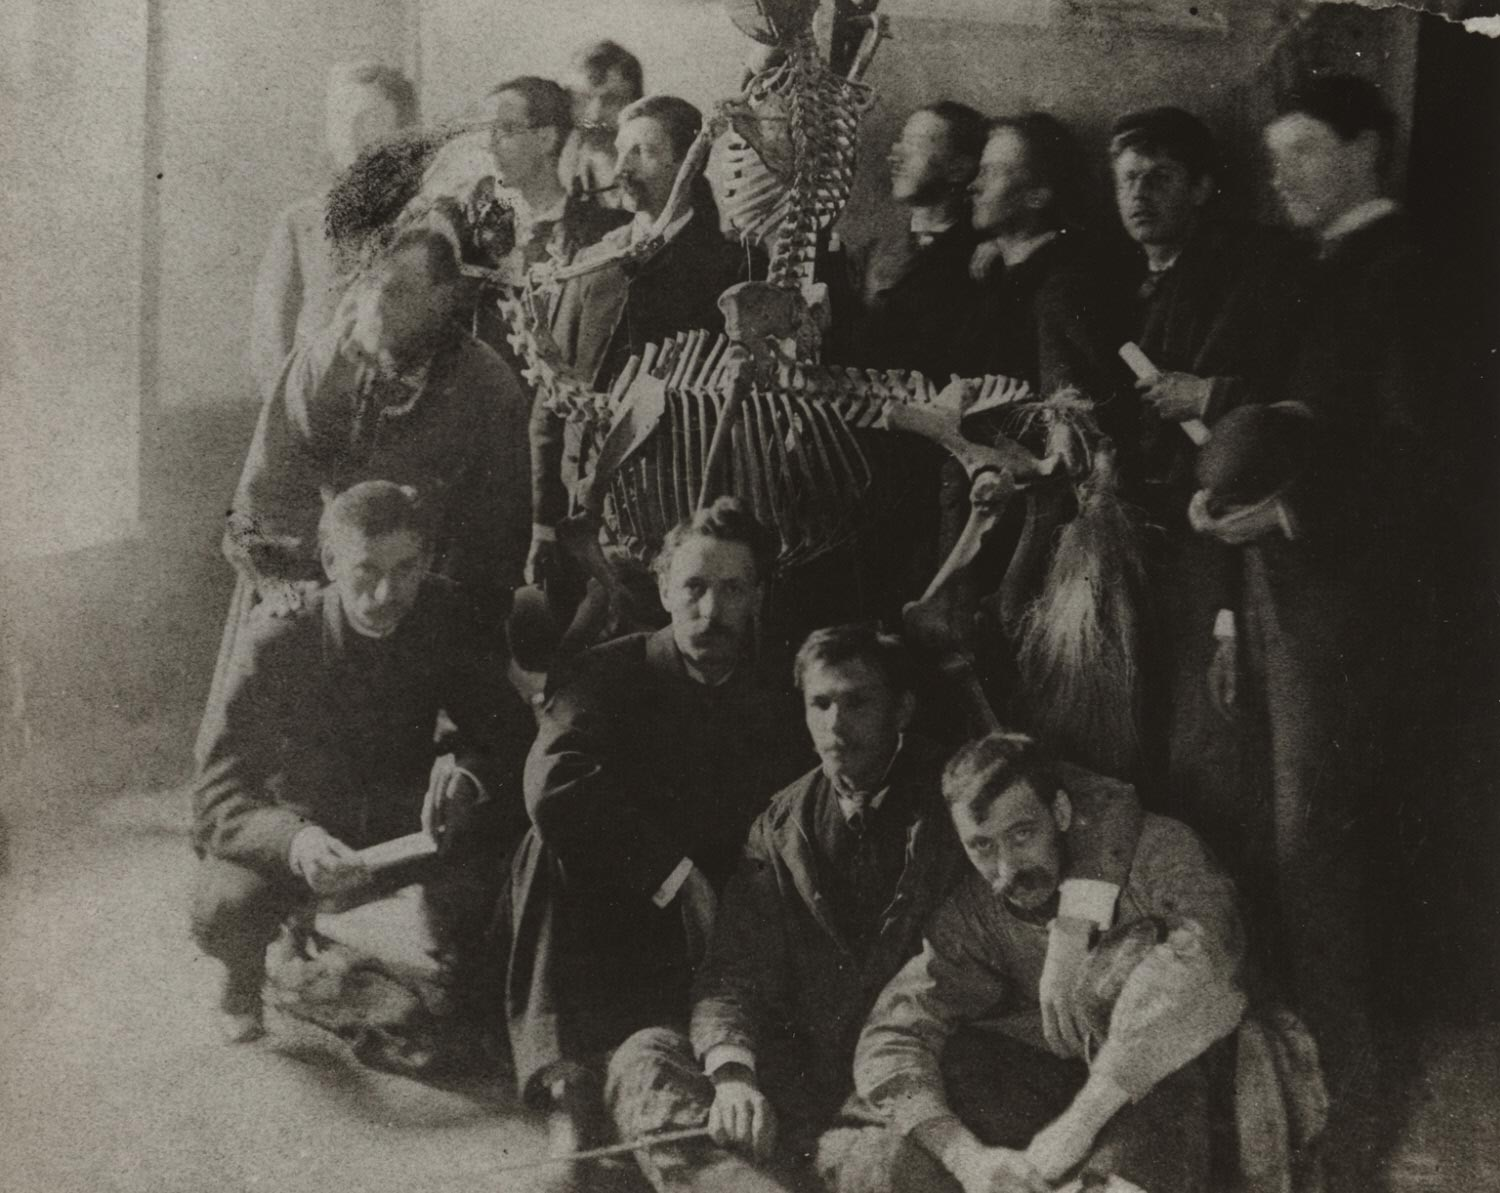 An Eakins Class at the Pennsylvania Academy of the Fine Arts